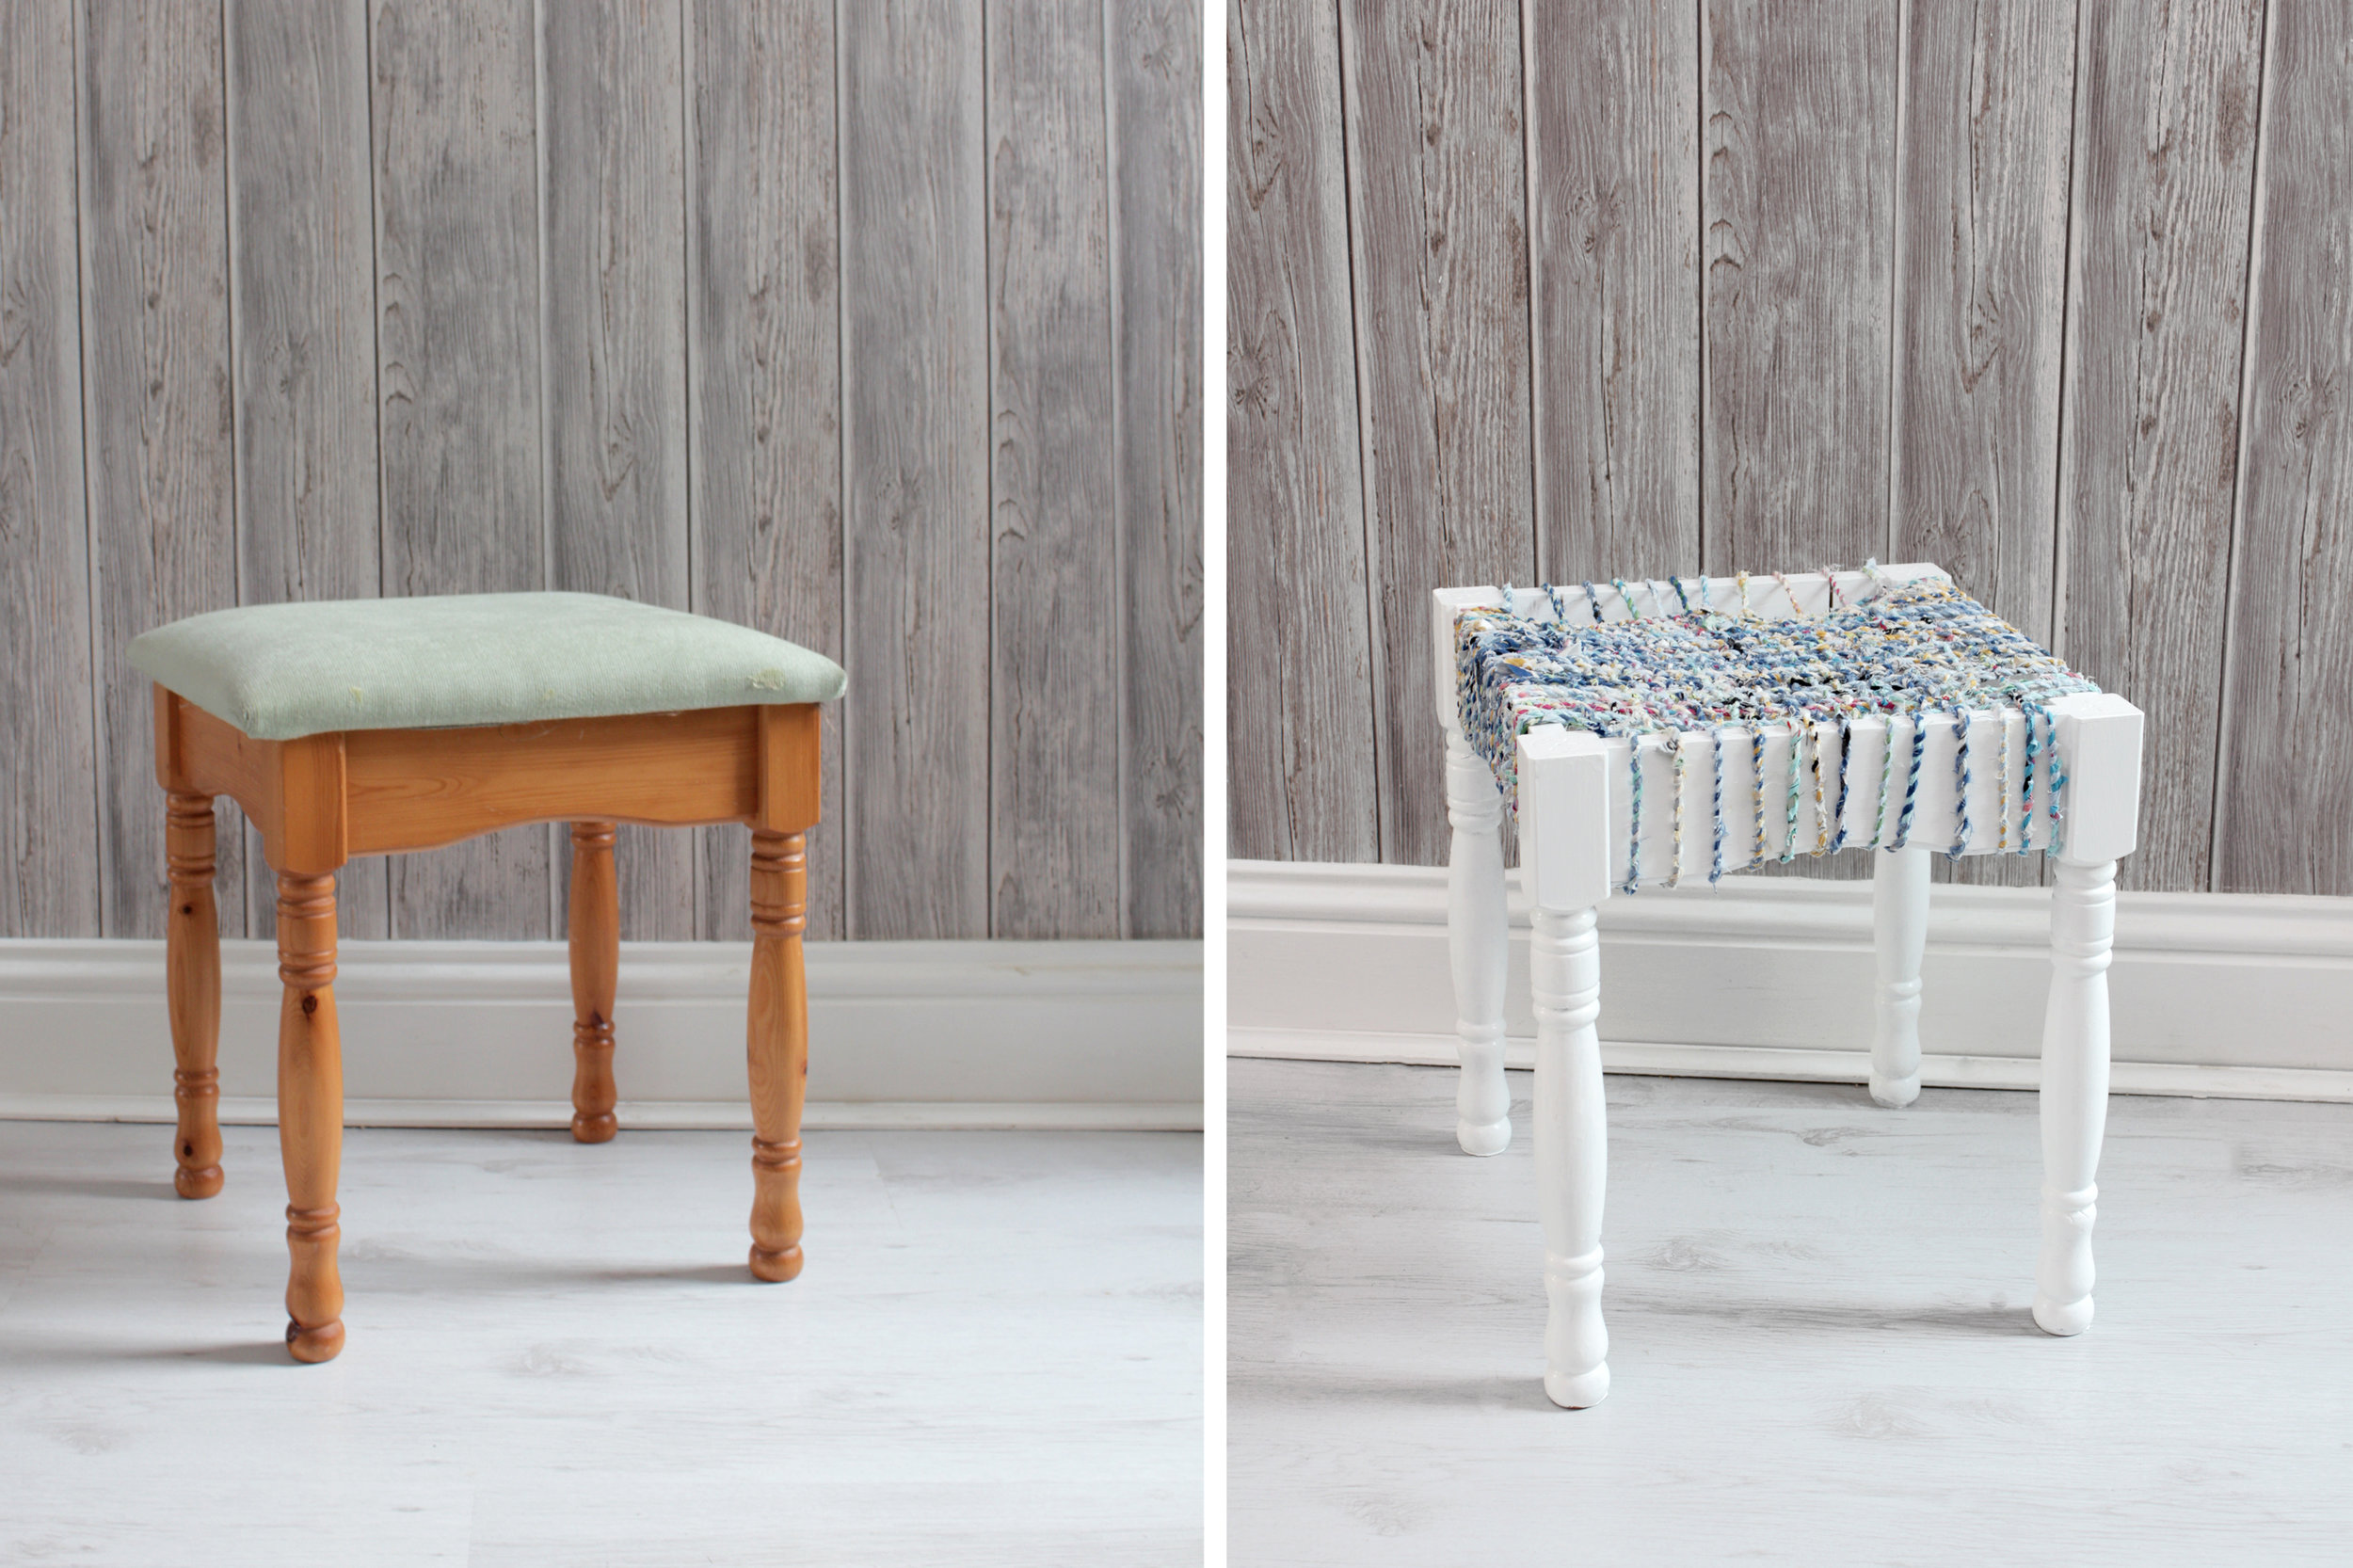 Upcycled stool for recycle week by www.hestershandmadehome.com